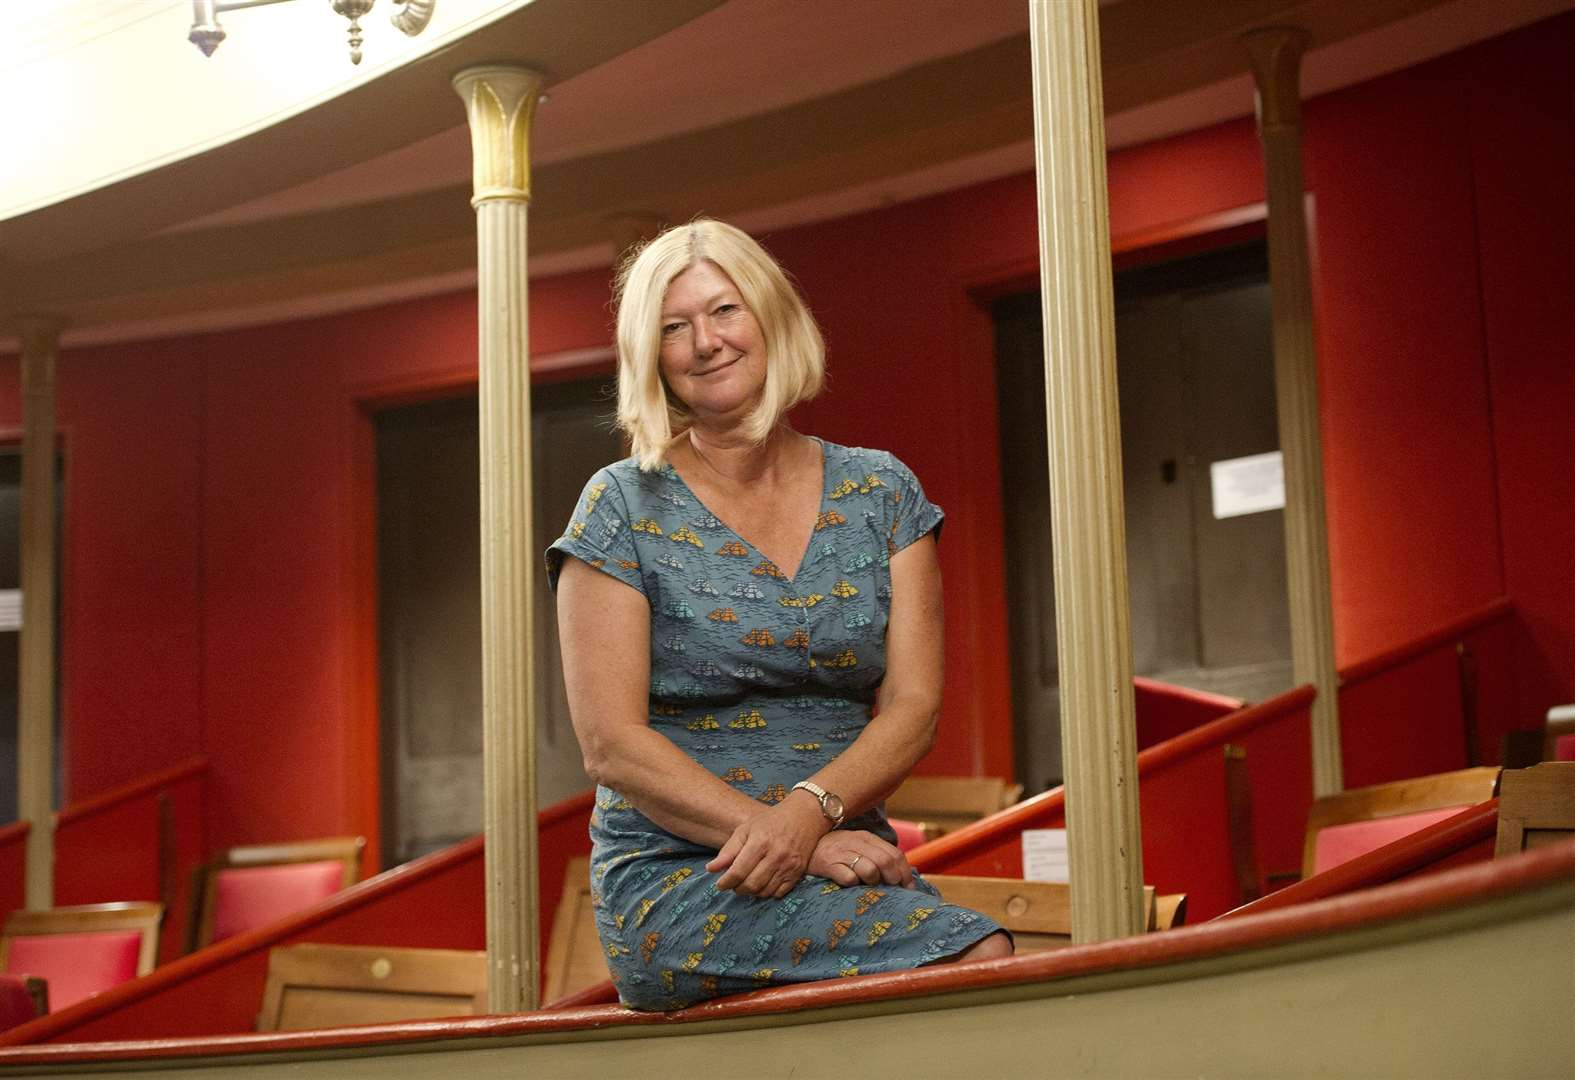 Theatre Royal Bury St Edmunds boss to step down after living with incurable cancer diagnosis